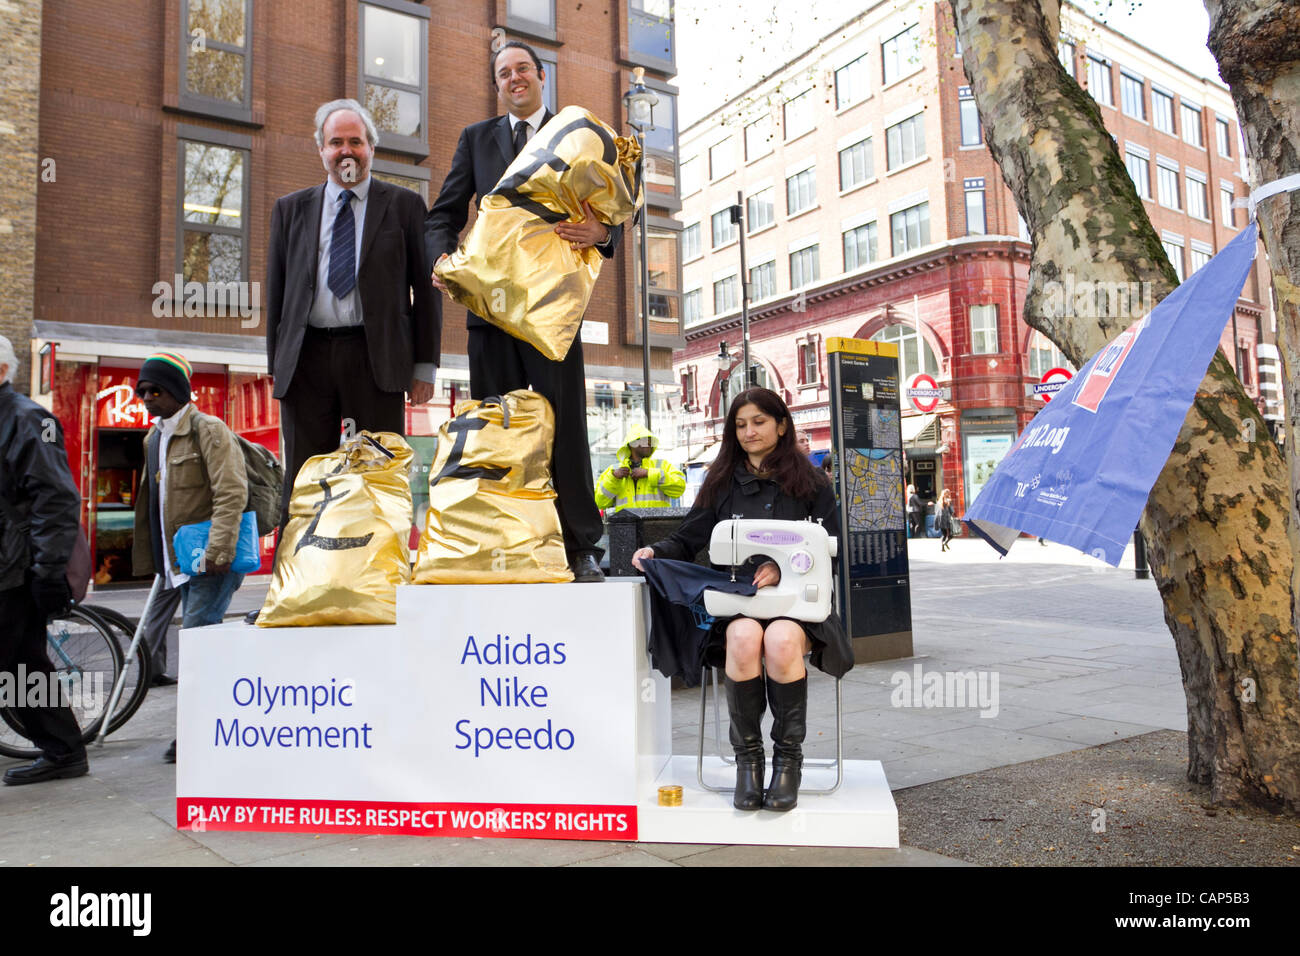 London, UK. 4th Apr 2012. (TUC)Trade Union Congress and 'Playfair' Campaigners on a podium in Covent Garden, - Stock Image